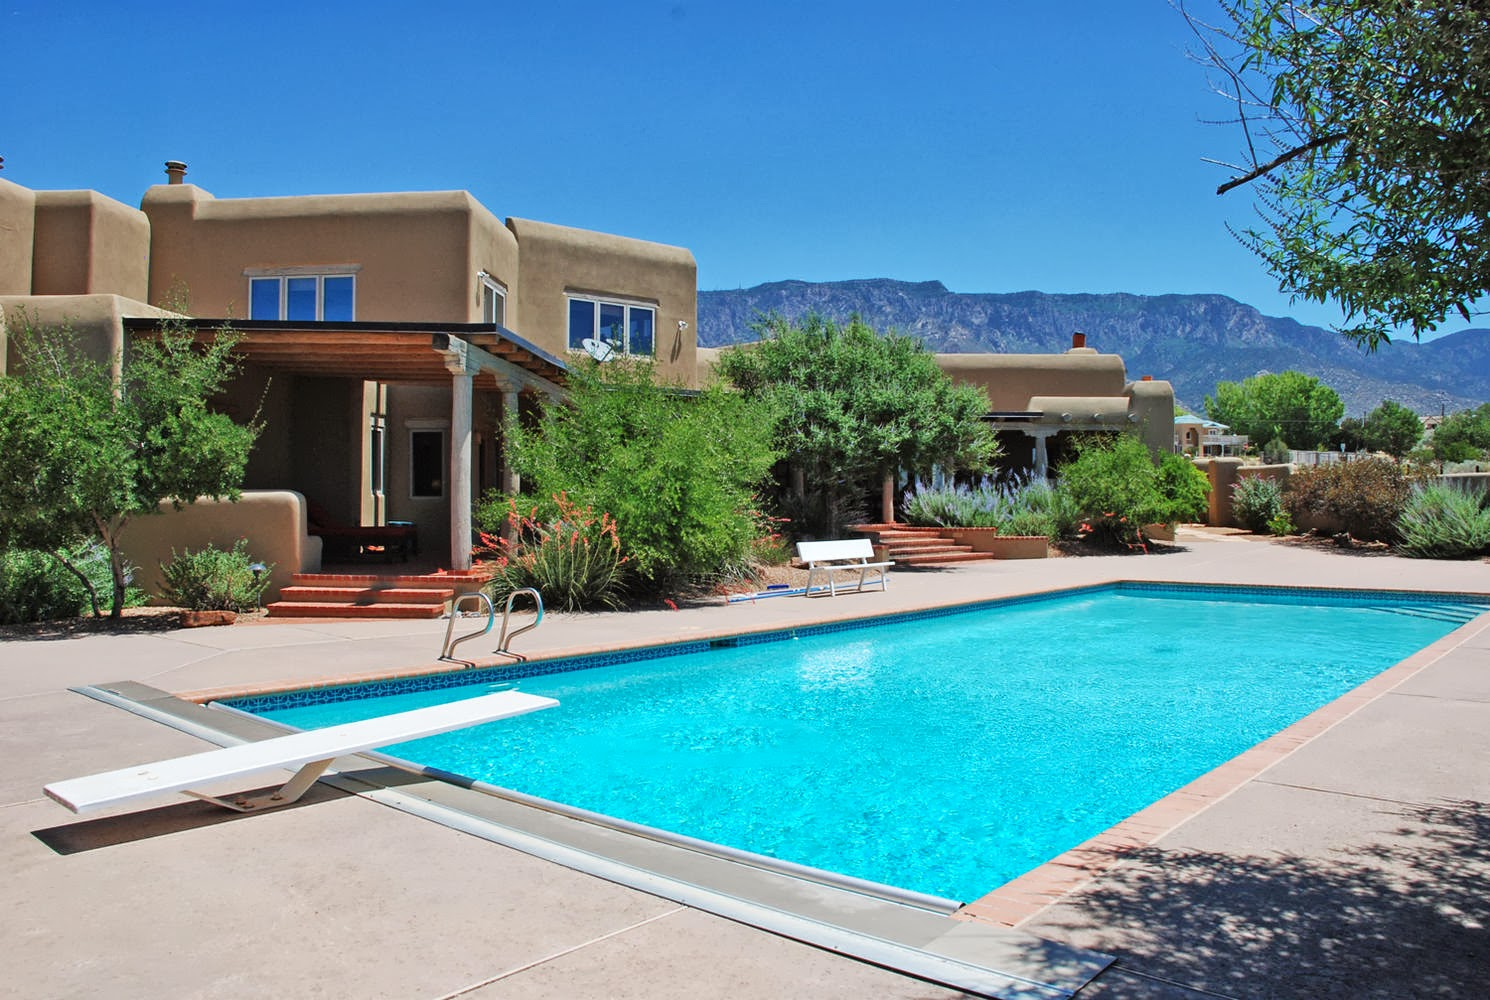 Albuquerque Homes For Sale With A Pool Venturi Realty Group